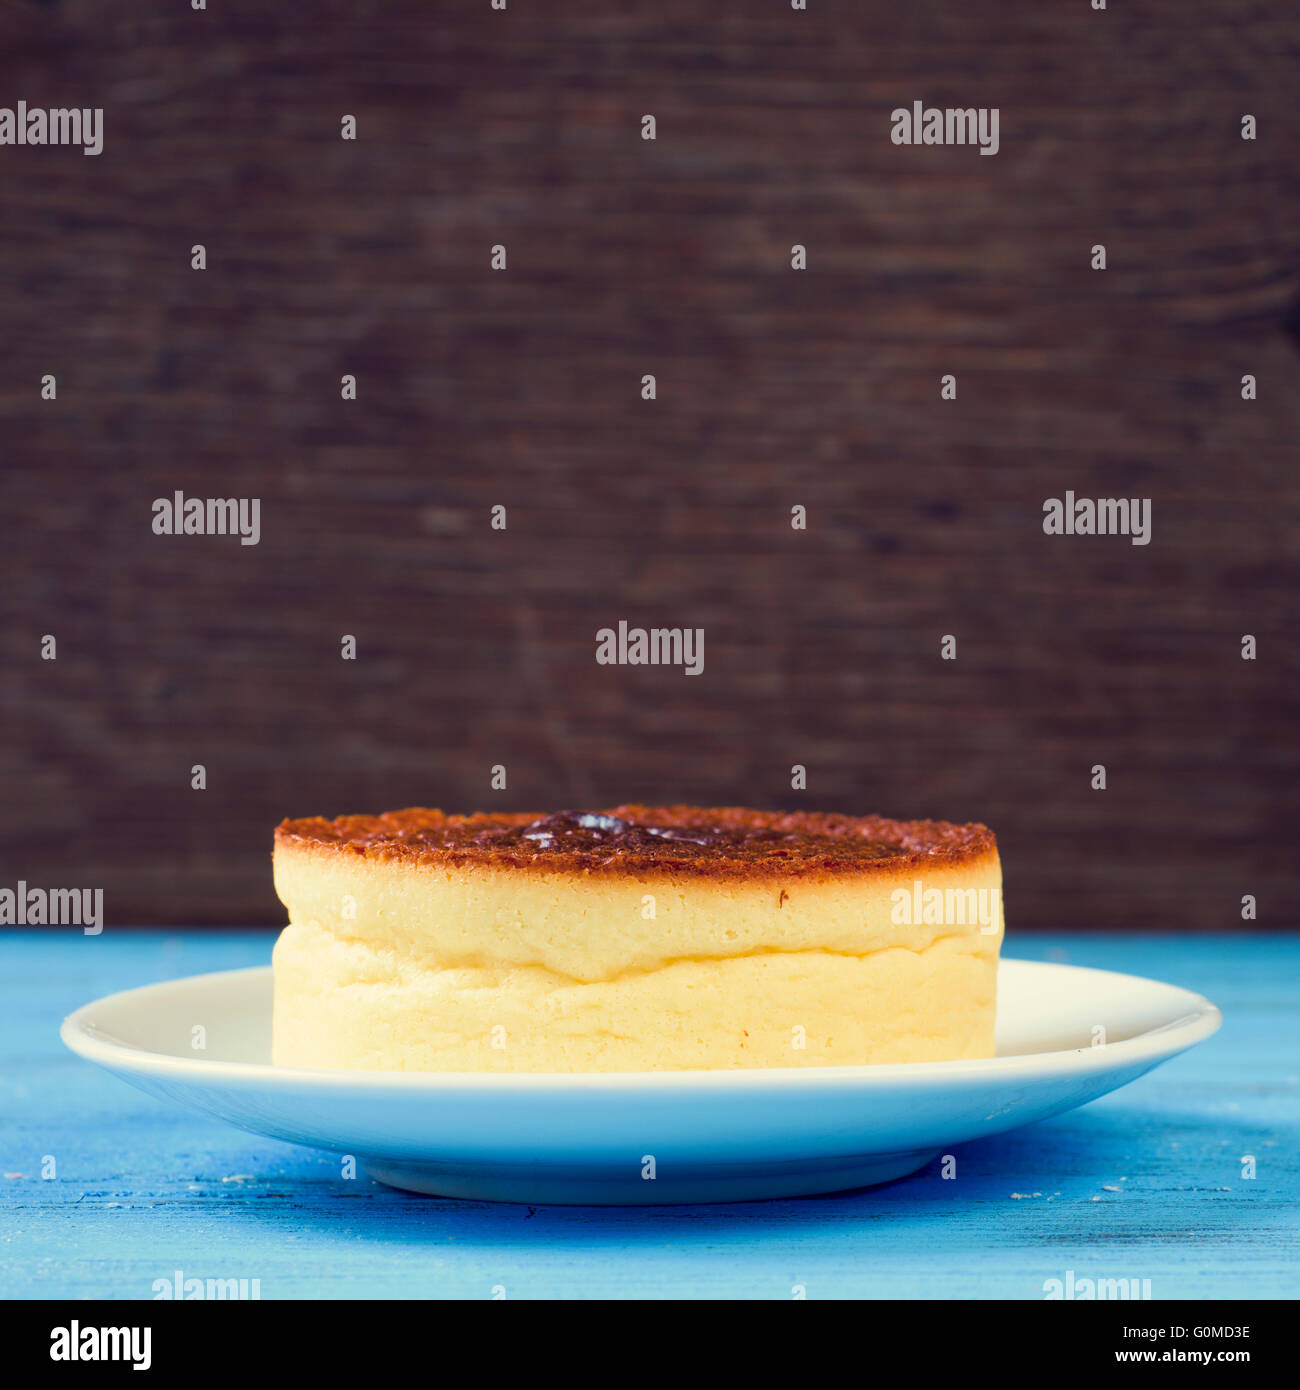 closeup of a cheesecake on a rustic blue wooden table, against a rustic wooden background - Stock Image